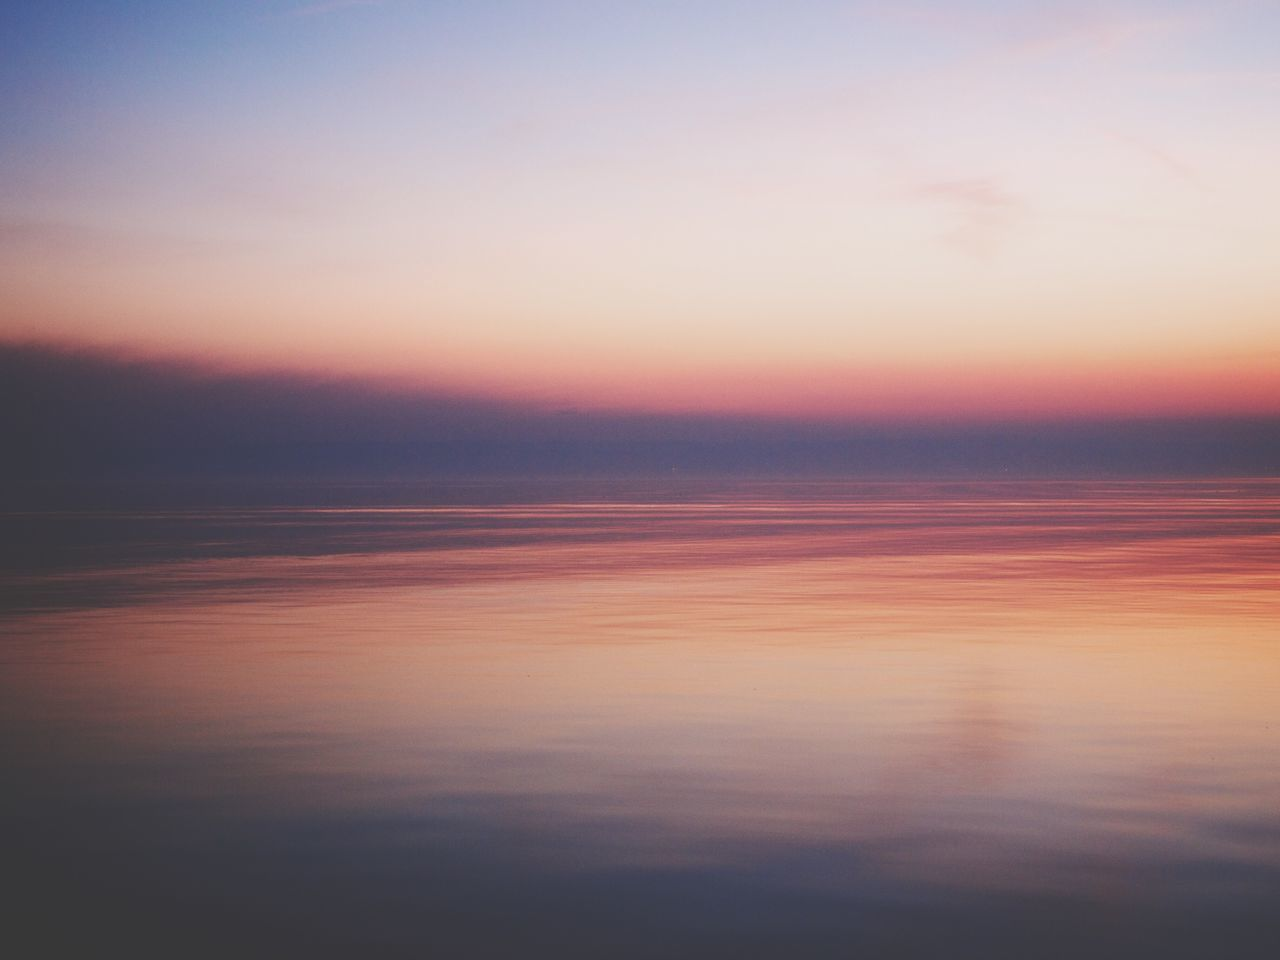 Sunset Reflecting In Water